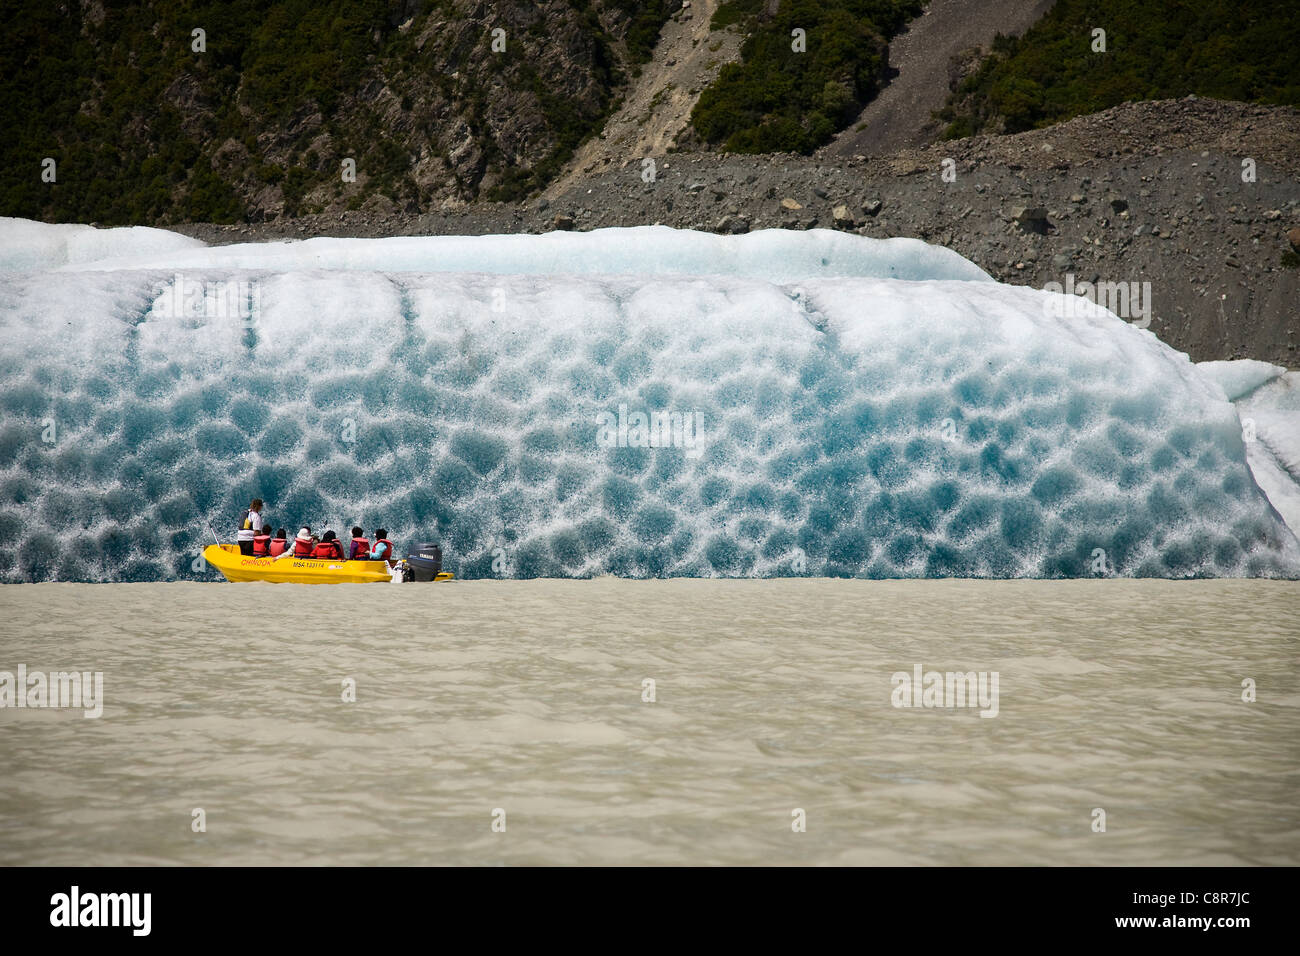 Tourists get close to an iceberg in the Tasman Glacier Terminal Lake, New Zealand Stock Photo